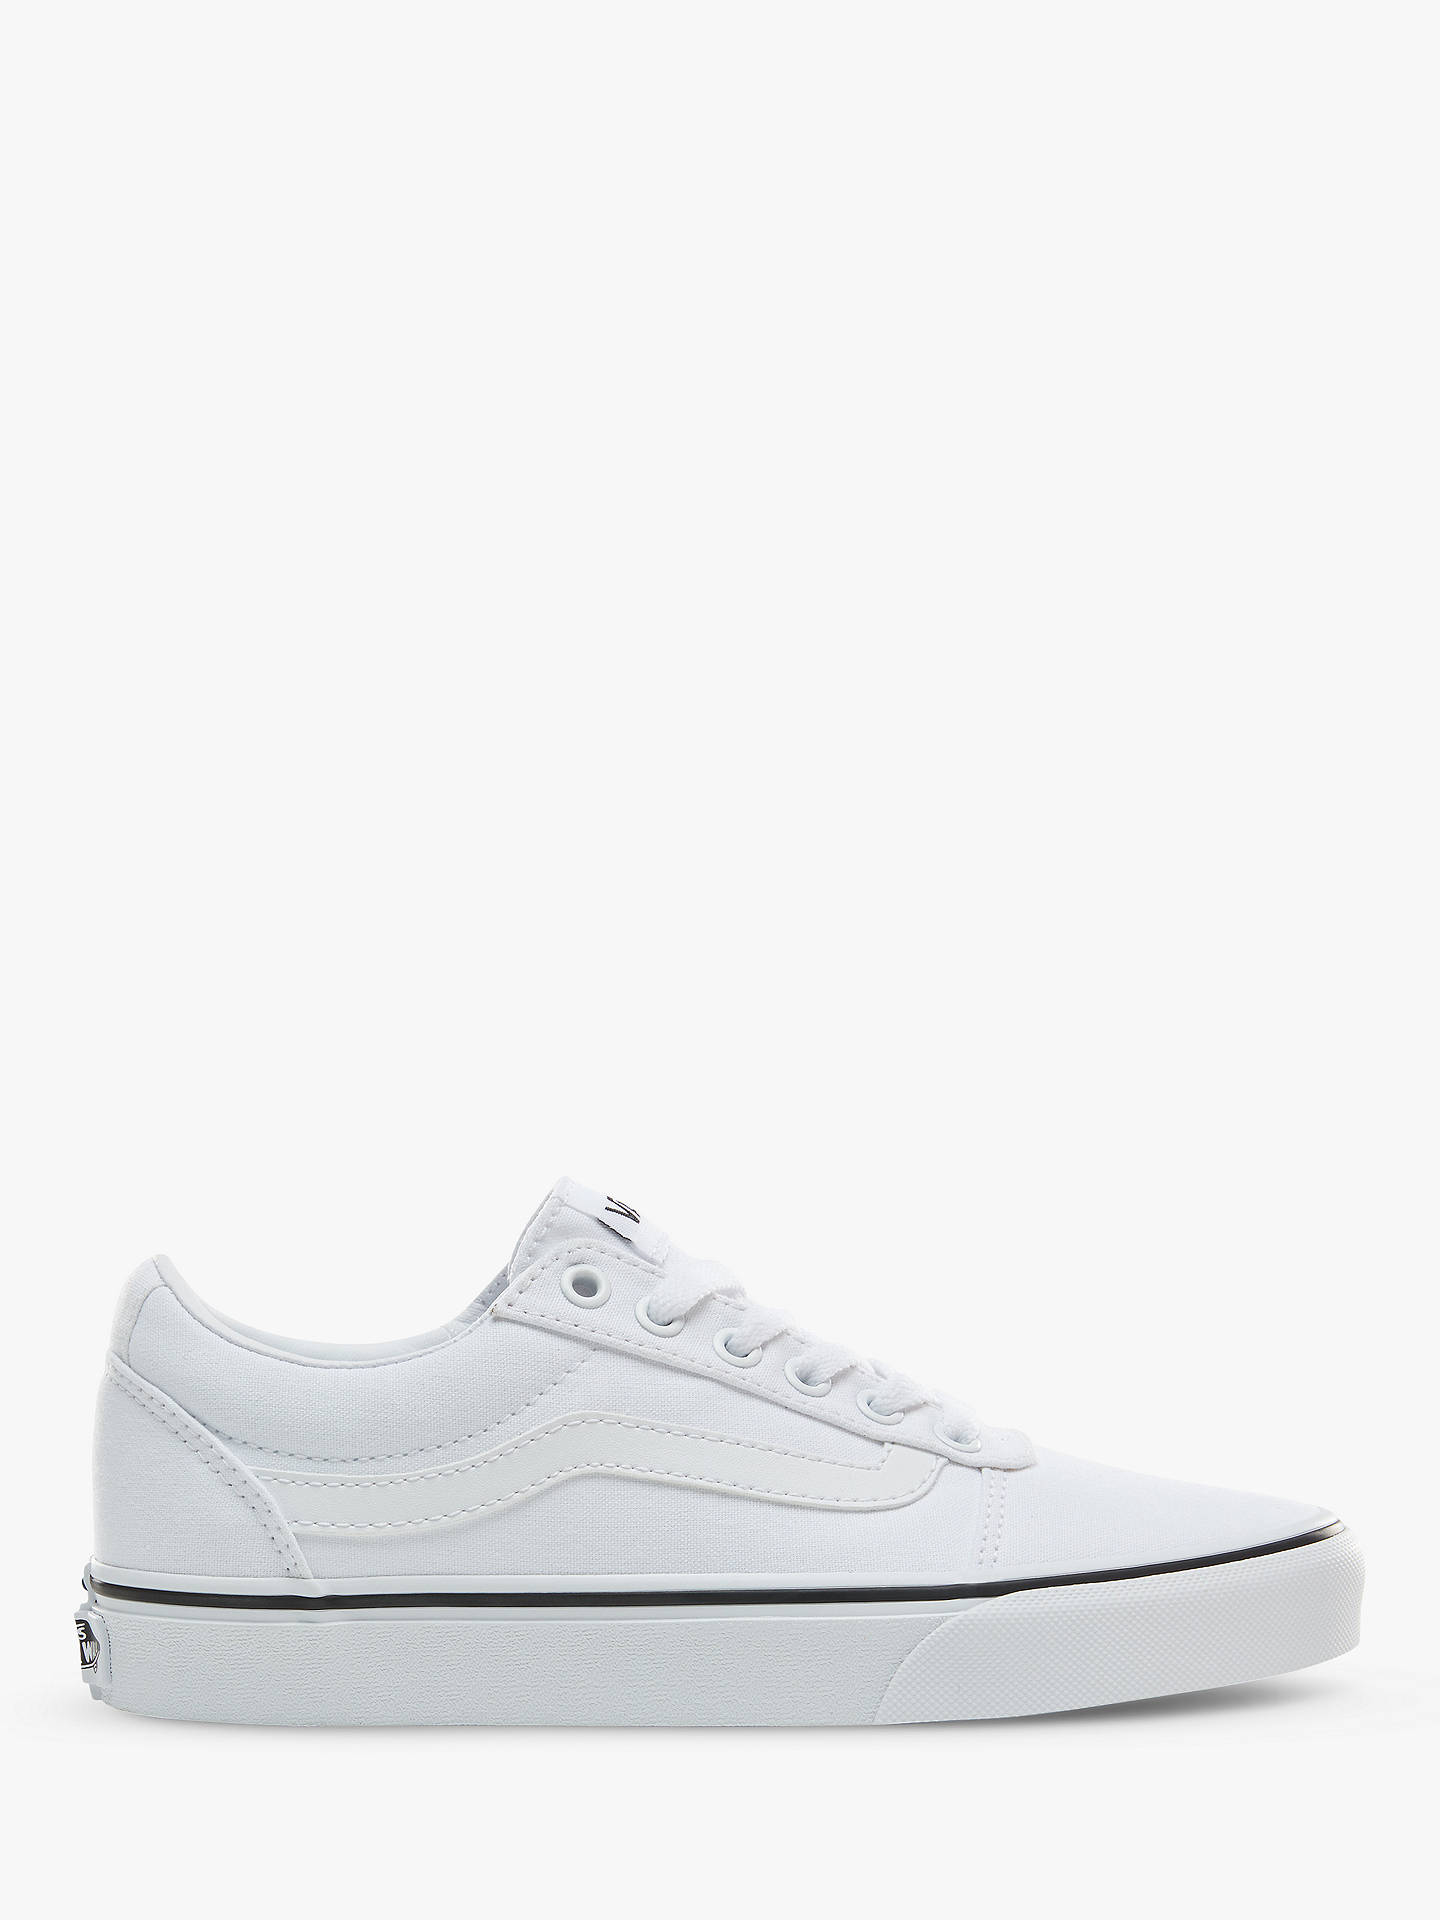 22694ae66 Buy Vans Ward Lace Up Trainers, White, 4 Online at johnlewis.com ...